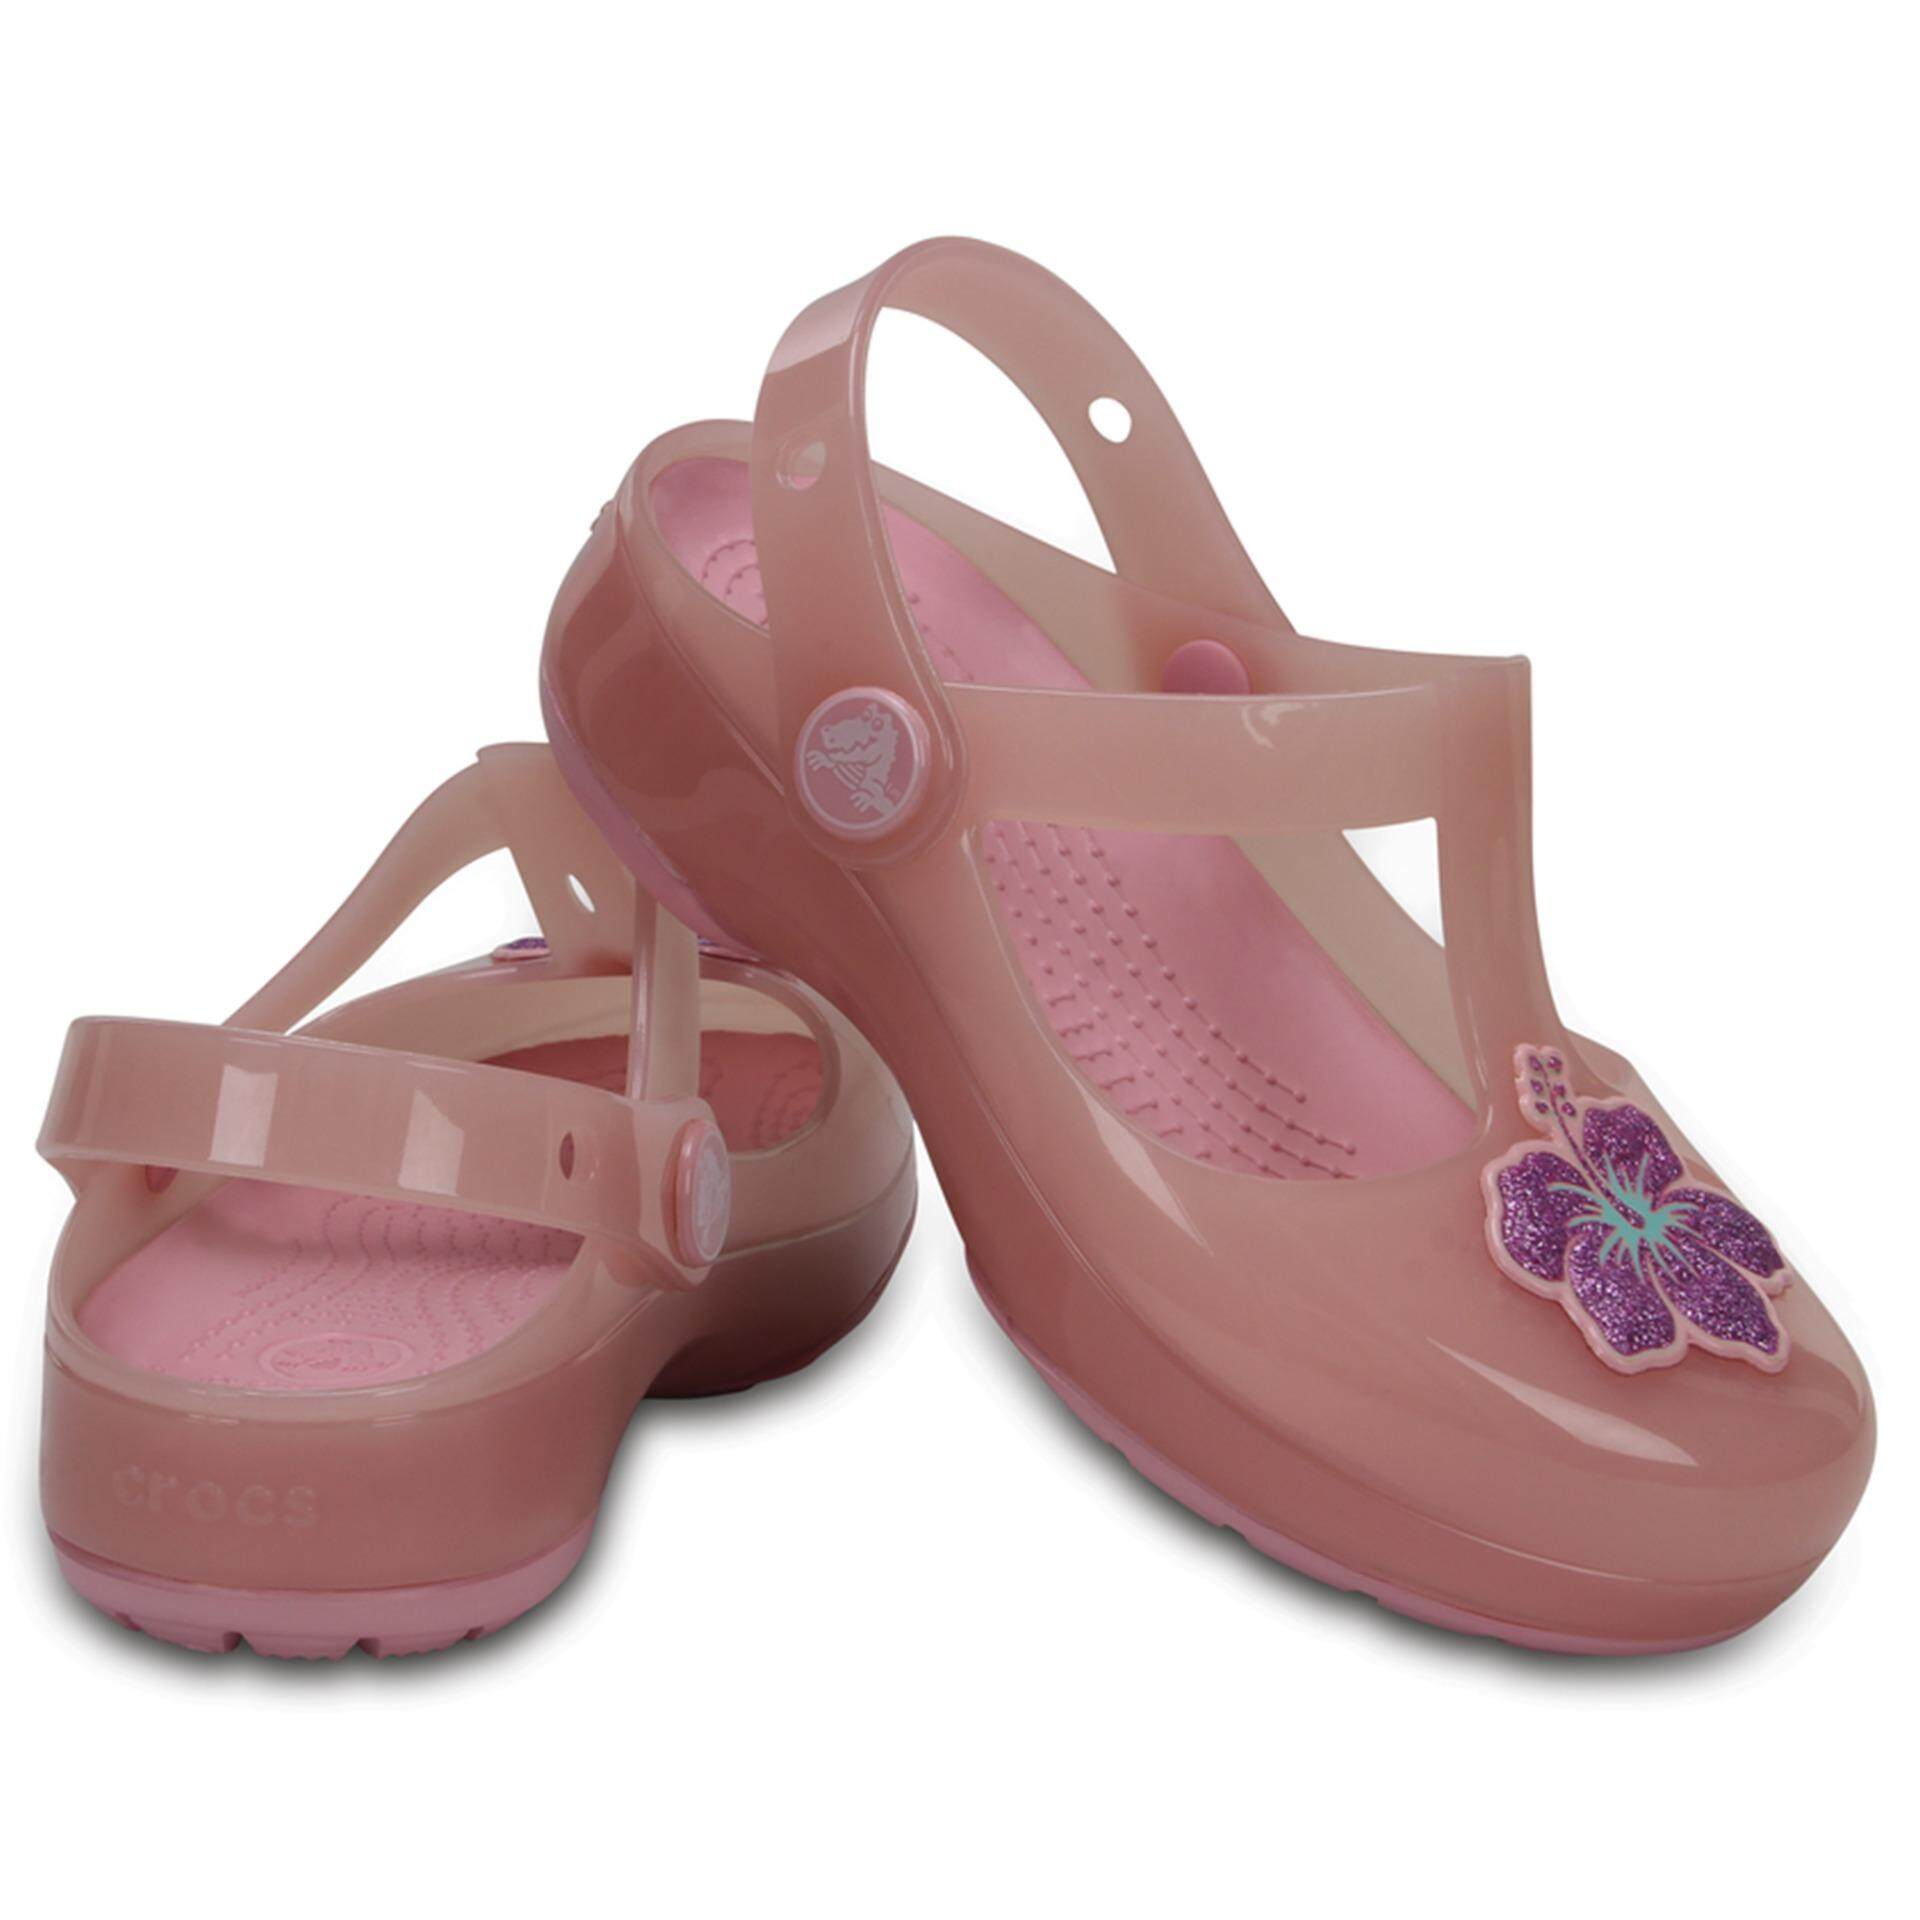 97fc6d99c CROCS Products for the Best Prices in Malaysia